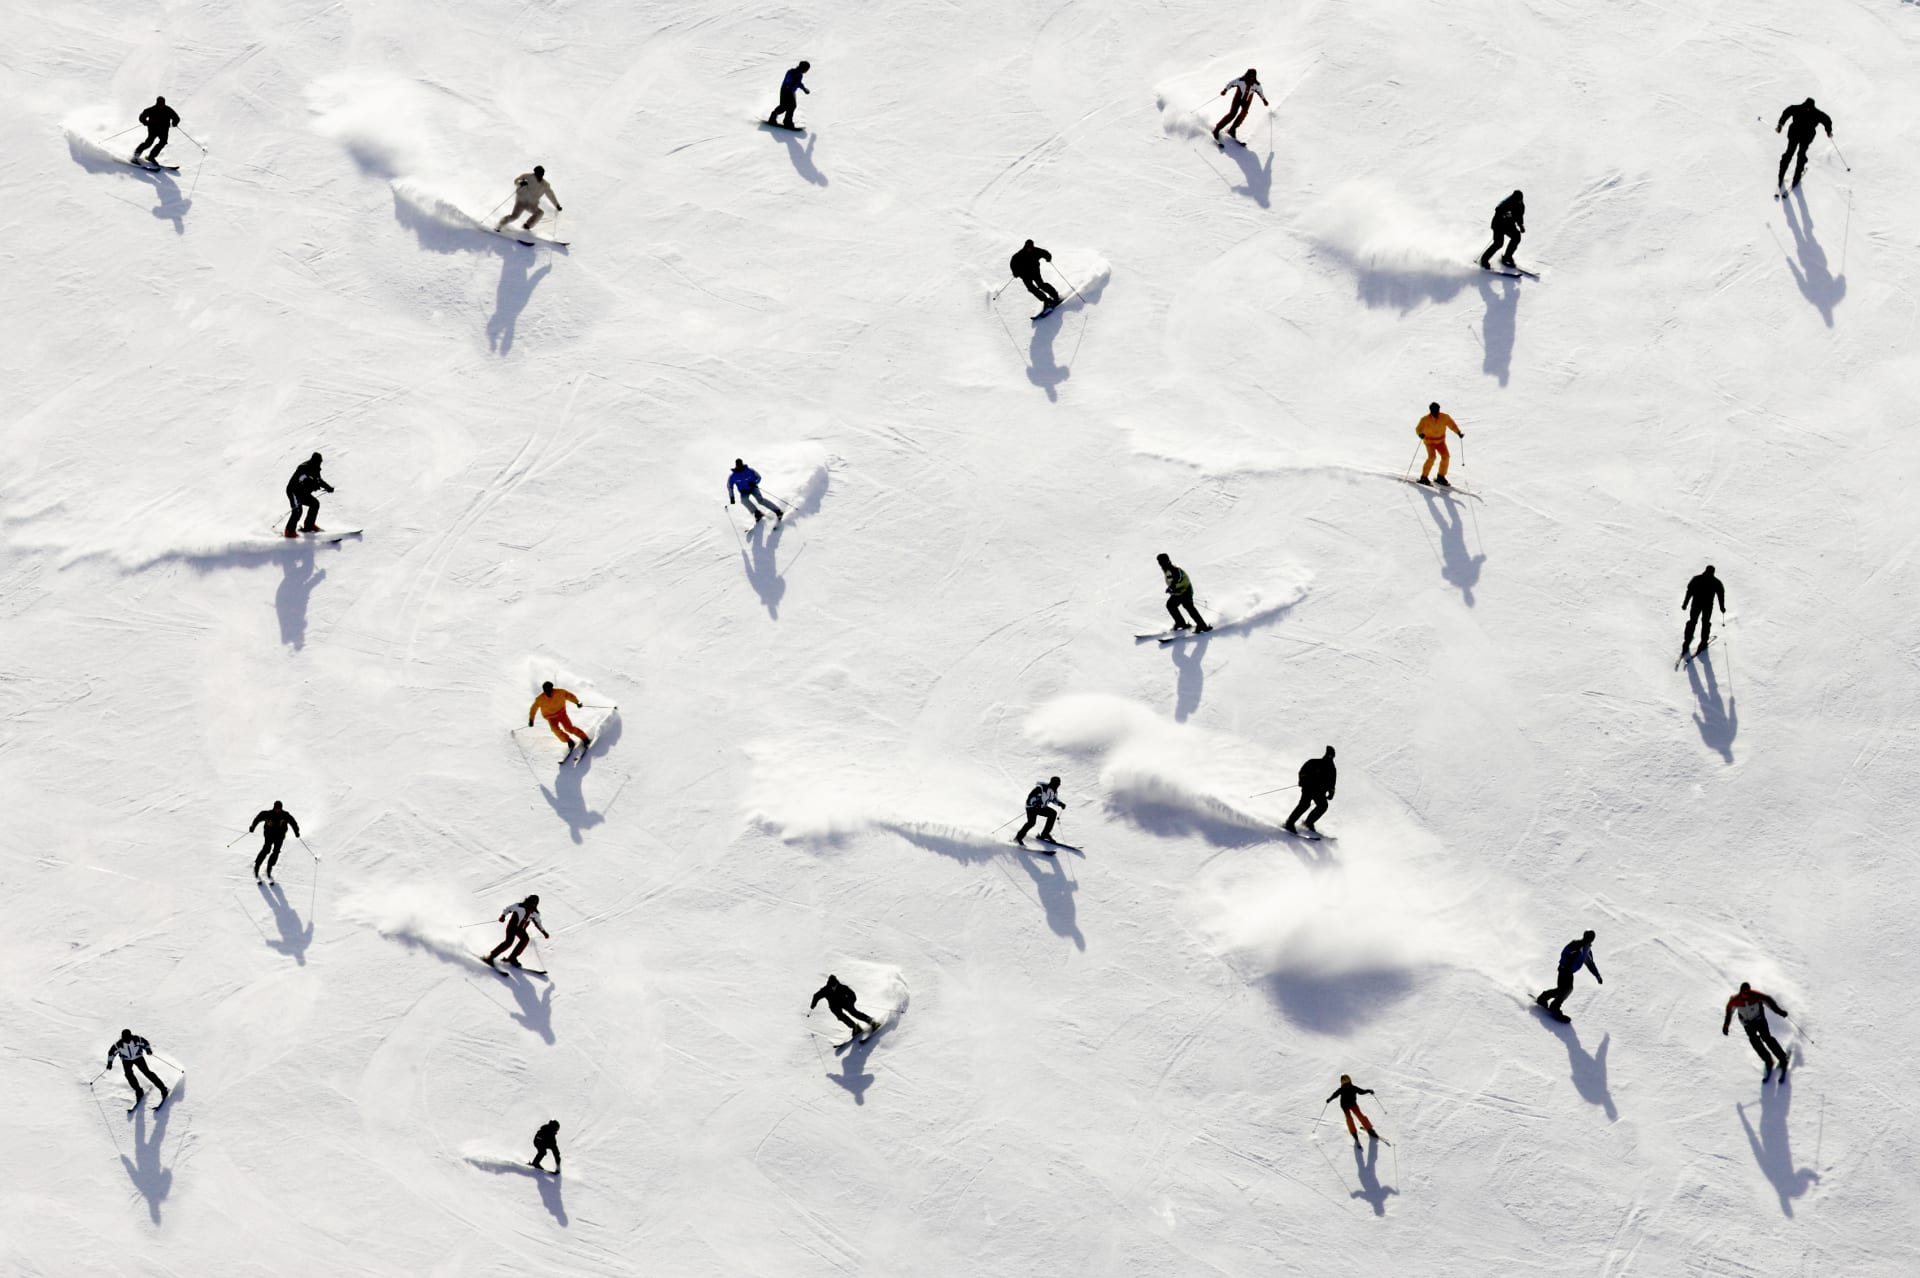 skiing slope with lots of people